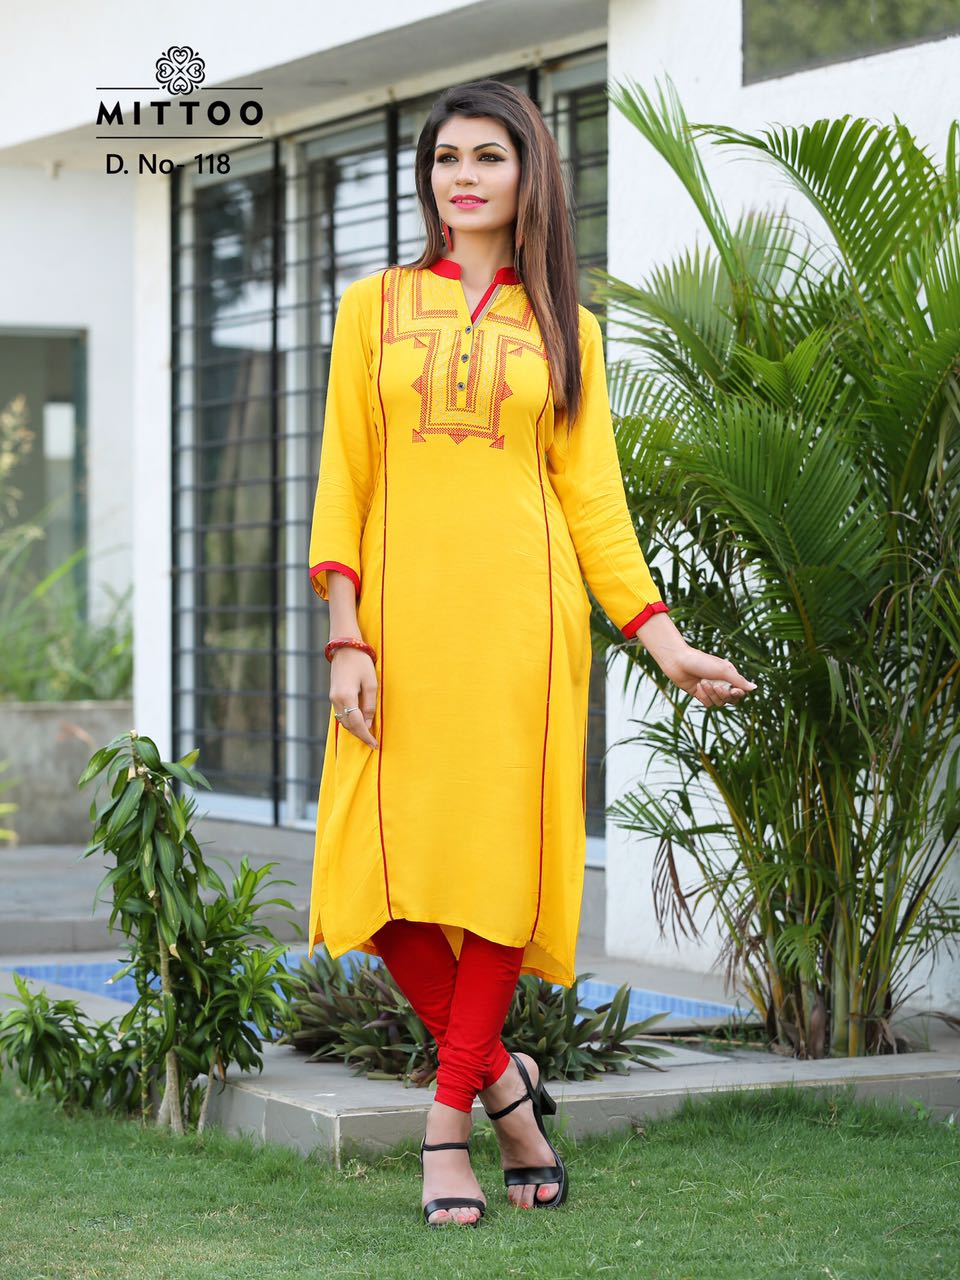 97a9e97829 Mittoo panchhi vol 3 designer Rayon Embroidery Kurtis dispatch from 12th  sep.